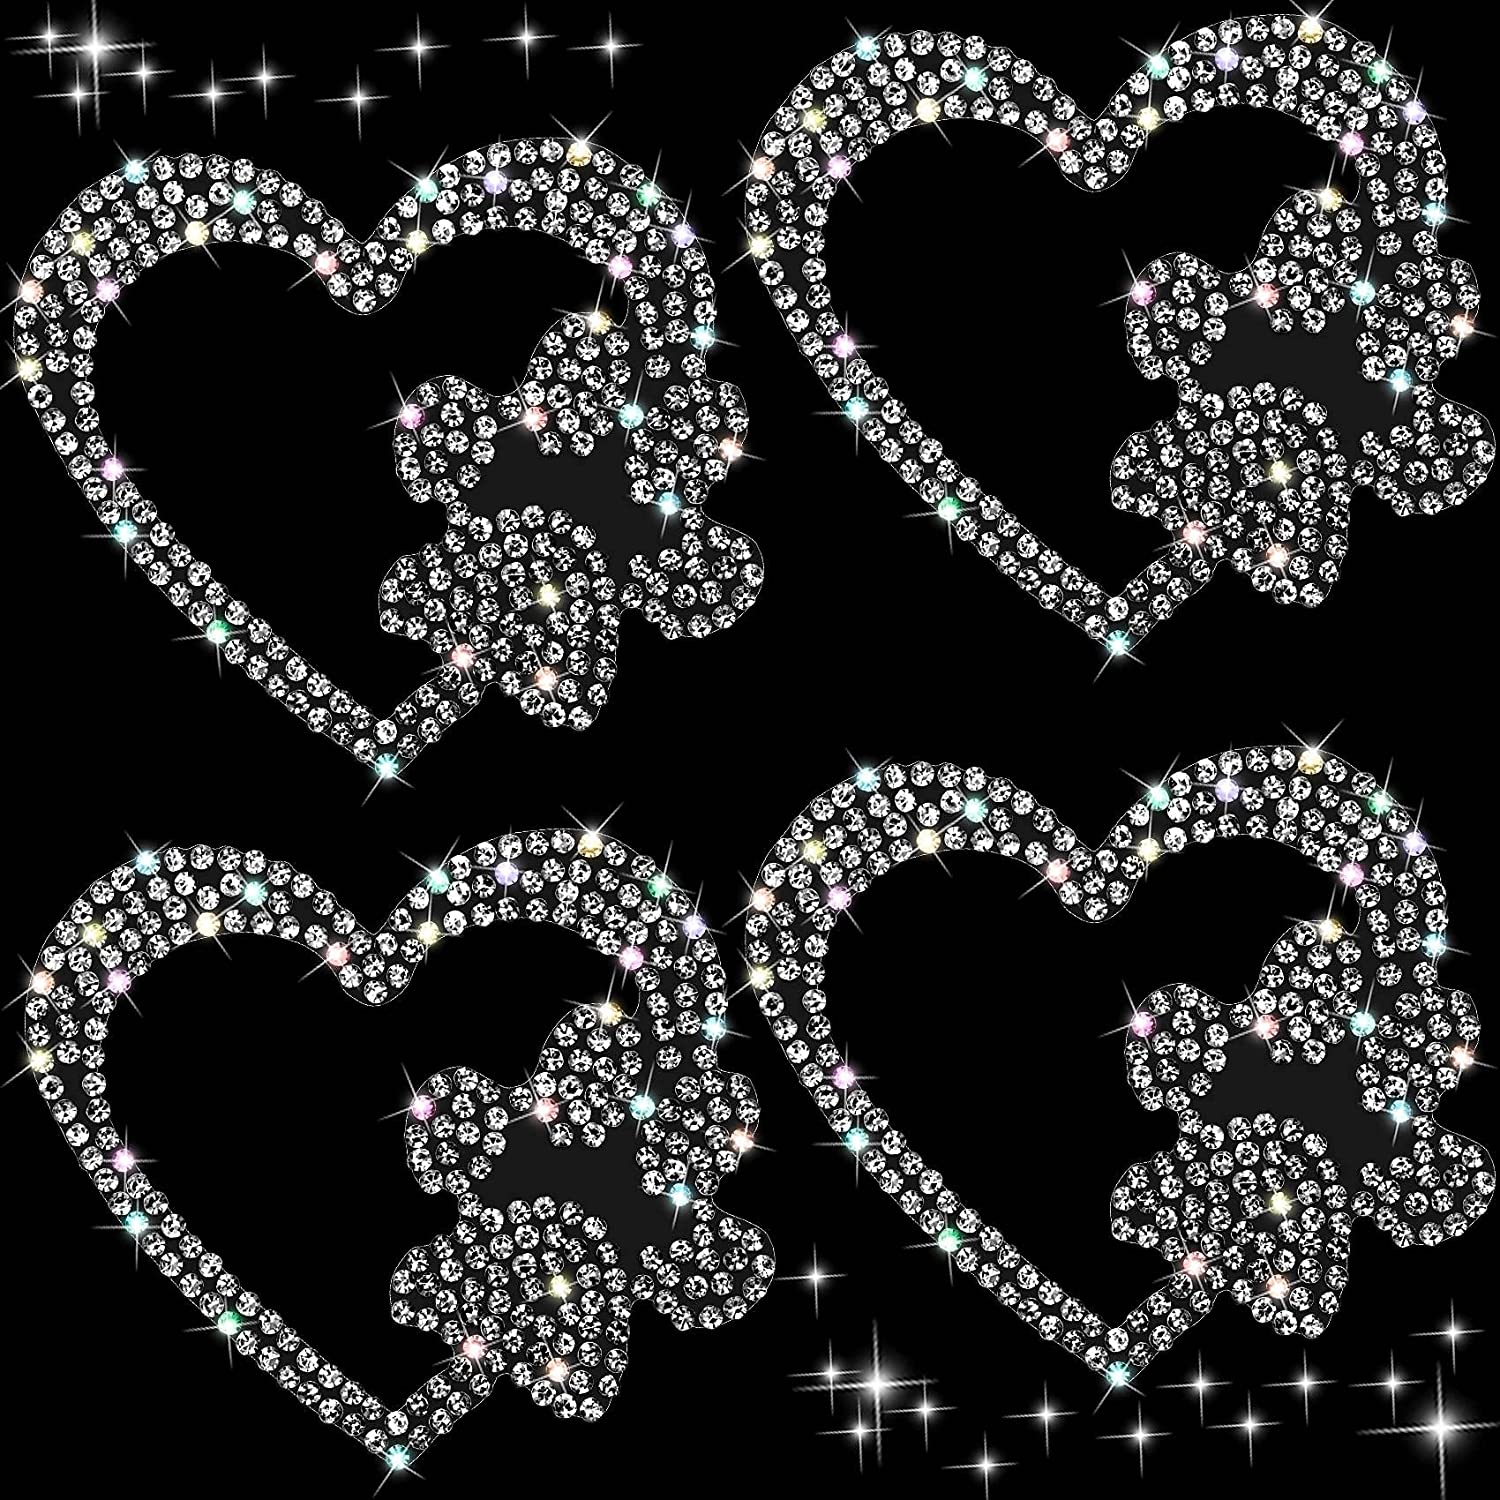 OIIKI 4PCS Car Bling Stickers and Decals, Rhinestone Crystal Heart with Dog Paw Car Stickers, Self-Adhesive White Glitter Rhinestones Decals, for Cars Walls Bumper Window Laptops Decoration(2.36 X 2.36 Inch)